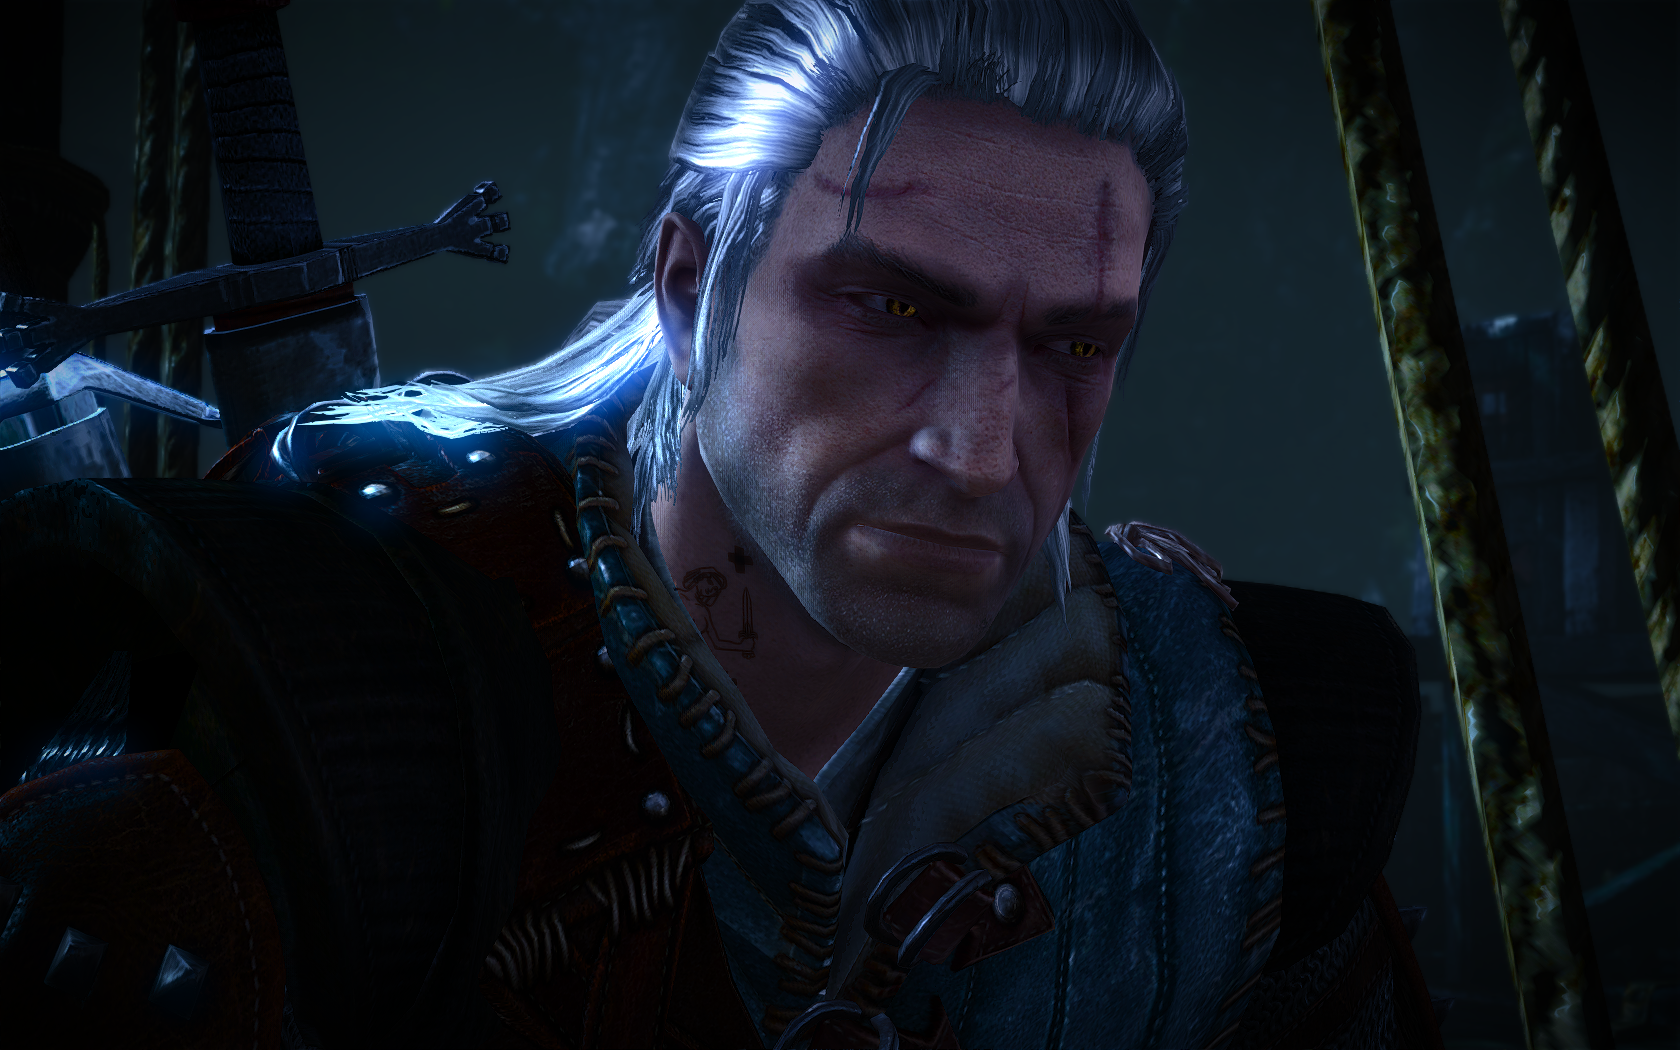 witcher22012-04-2801-9tojs.png